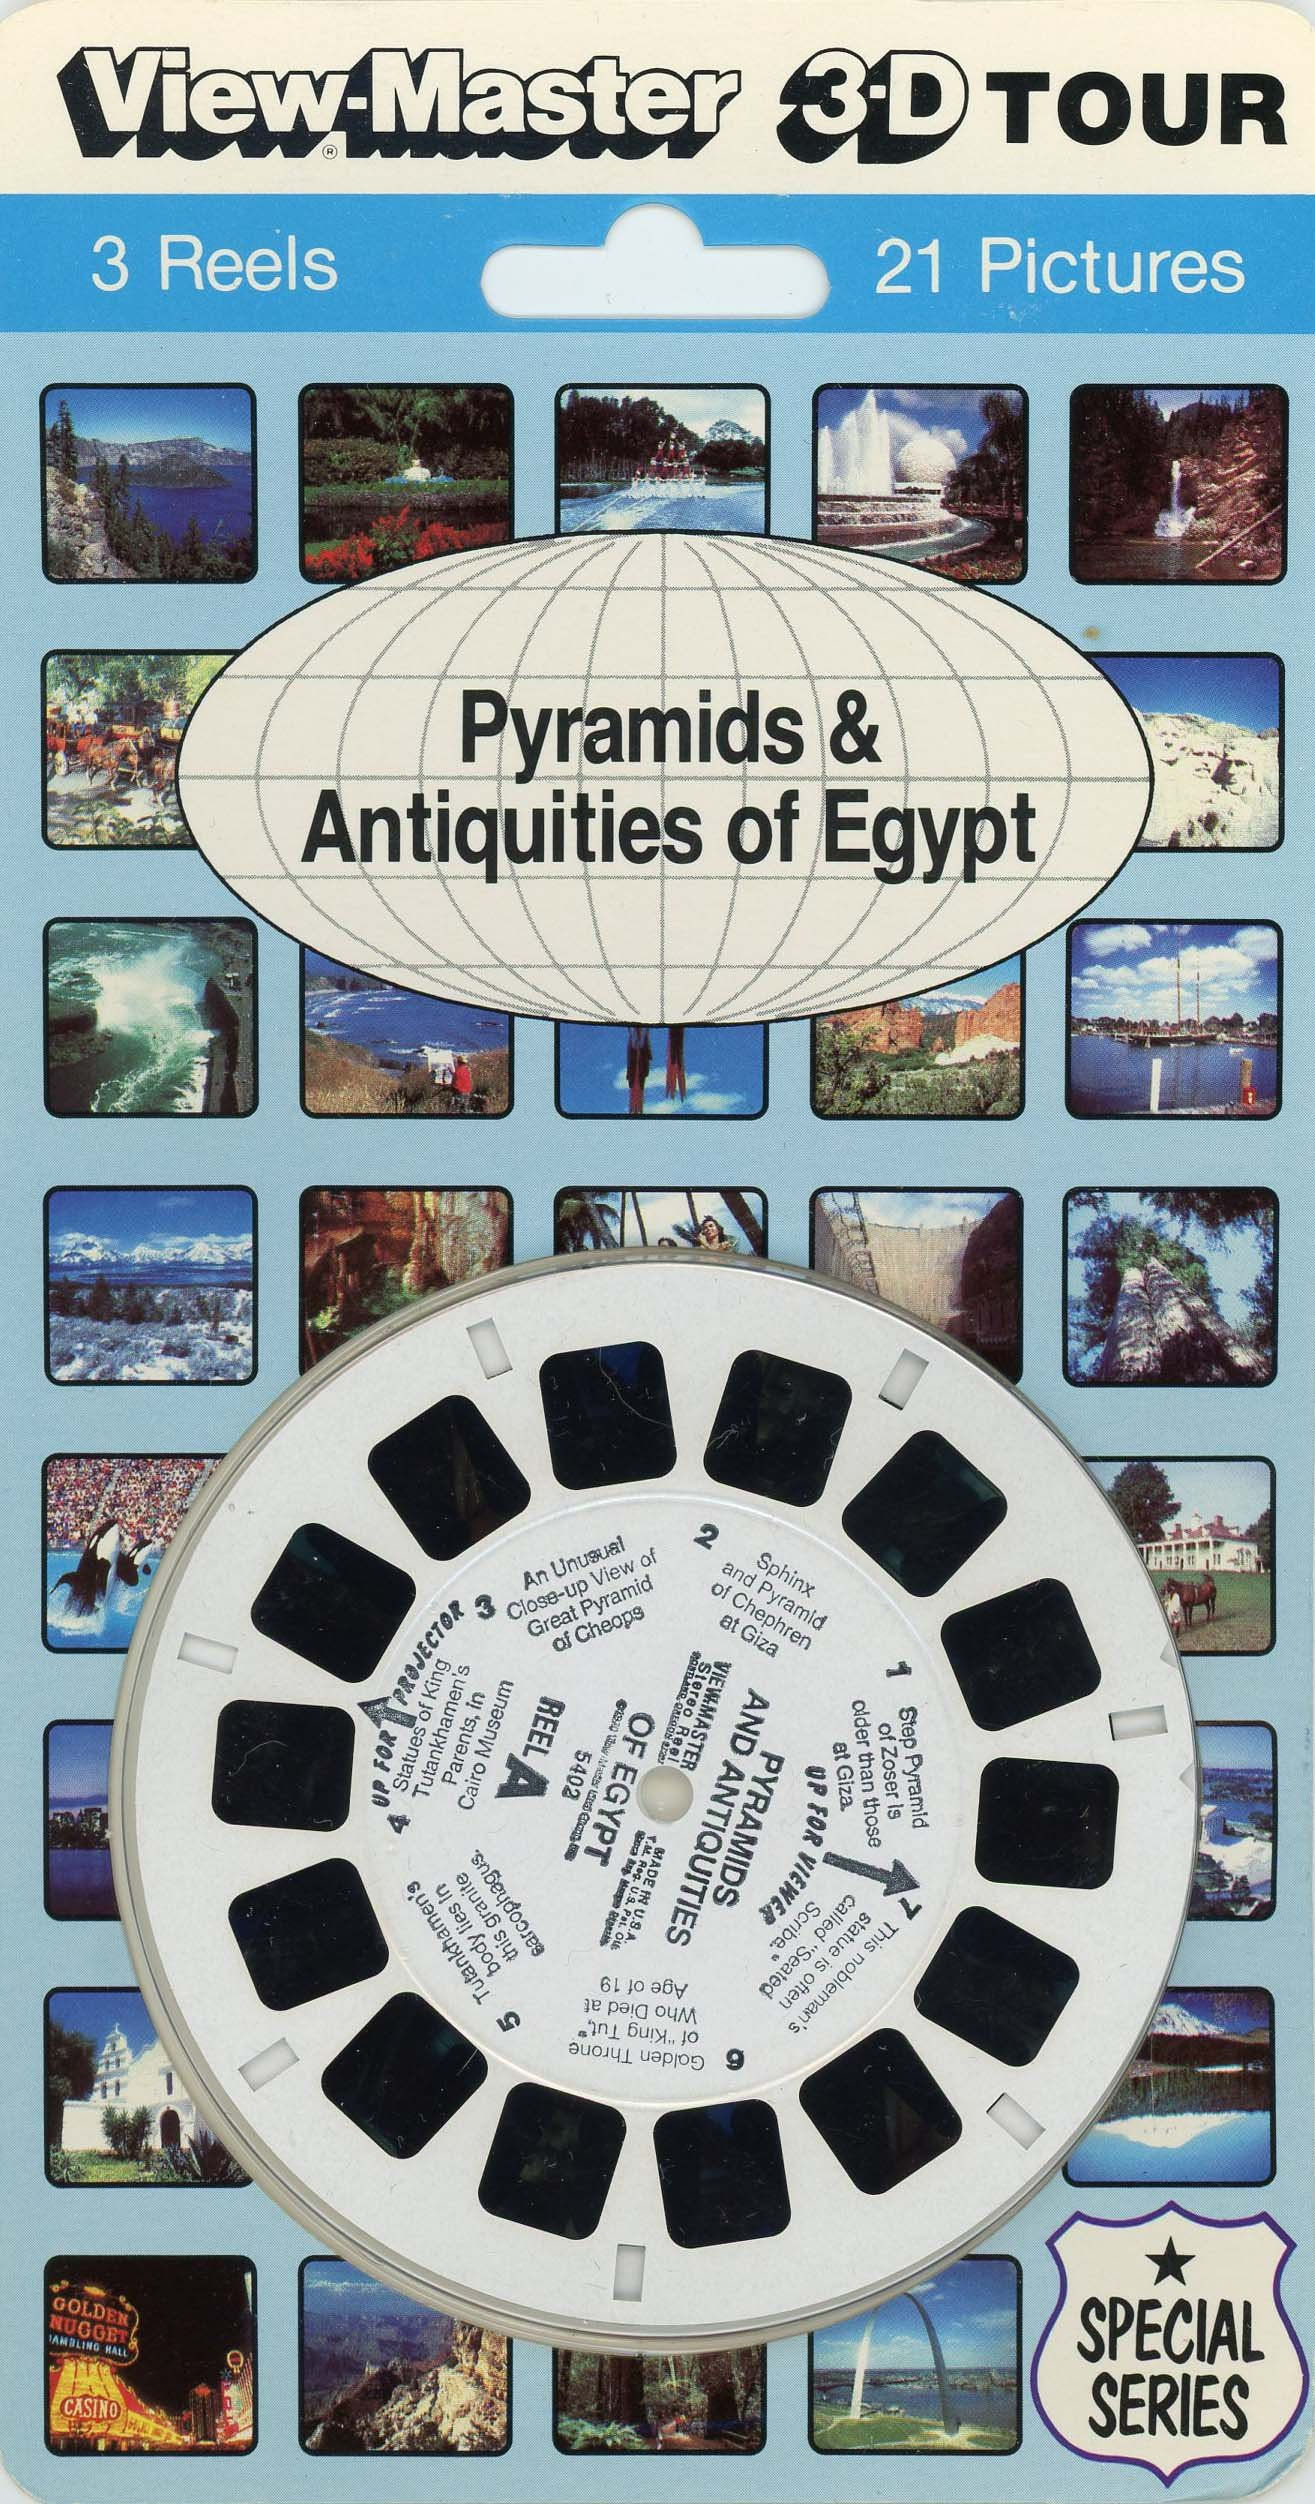 ViewMaster -Pyramids and Antiquities - ViewMaster Reels 3D - from the 1970s by 3Dstereo ViewMaster (Image #1)